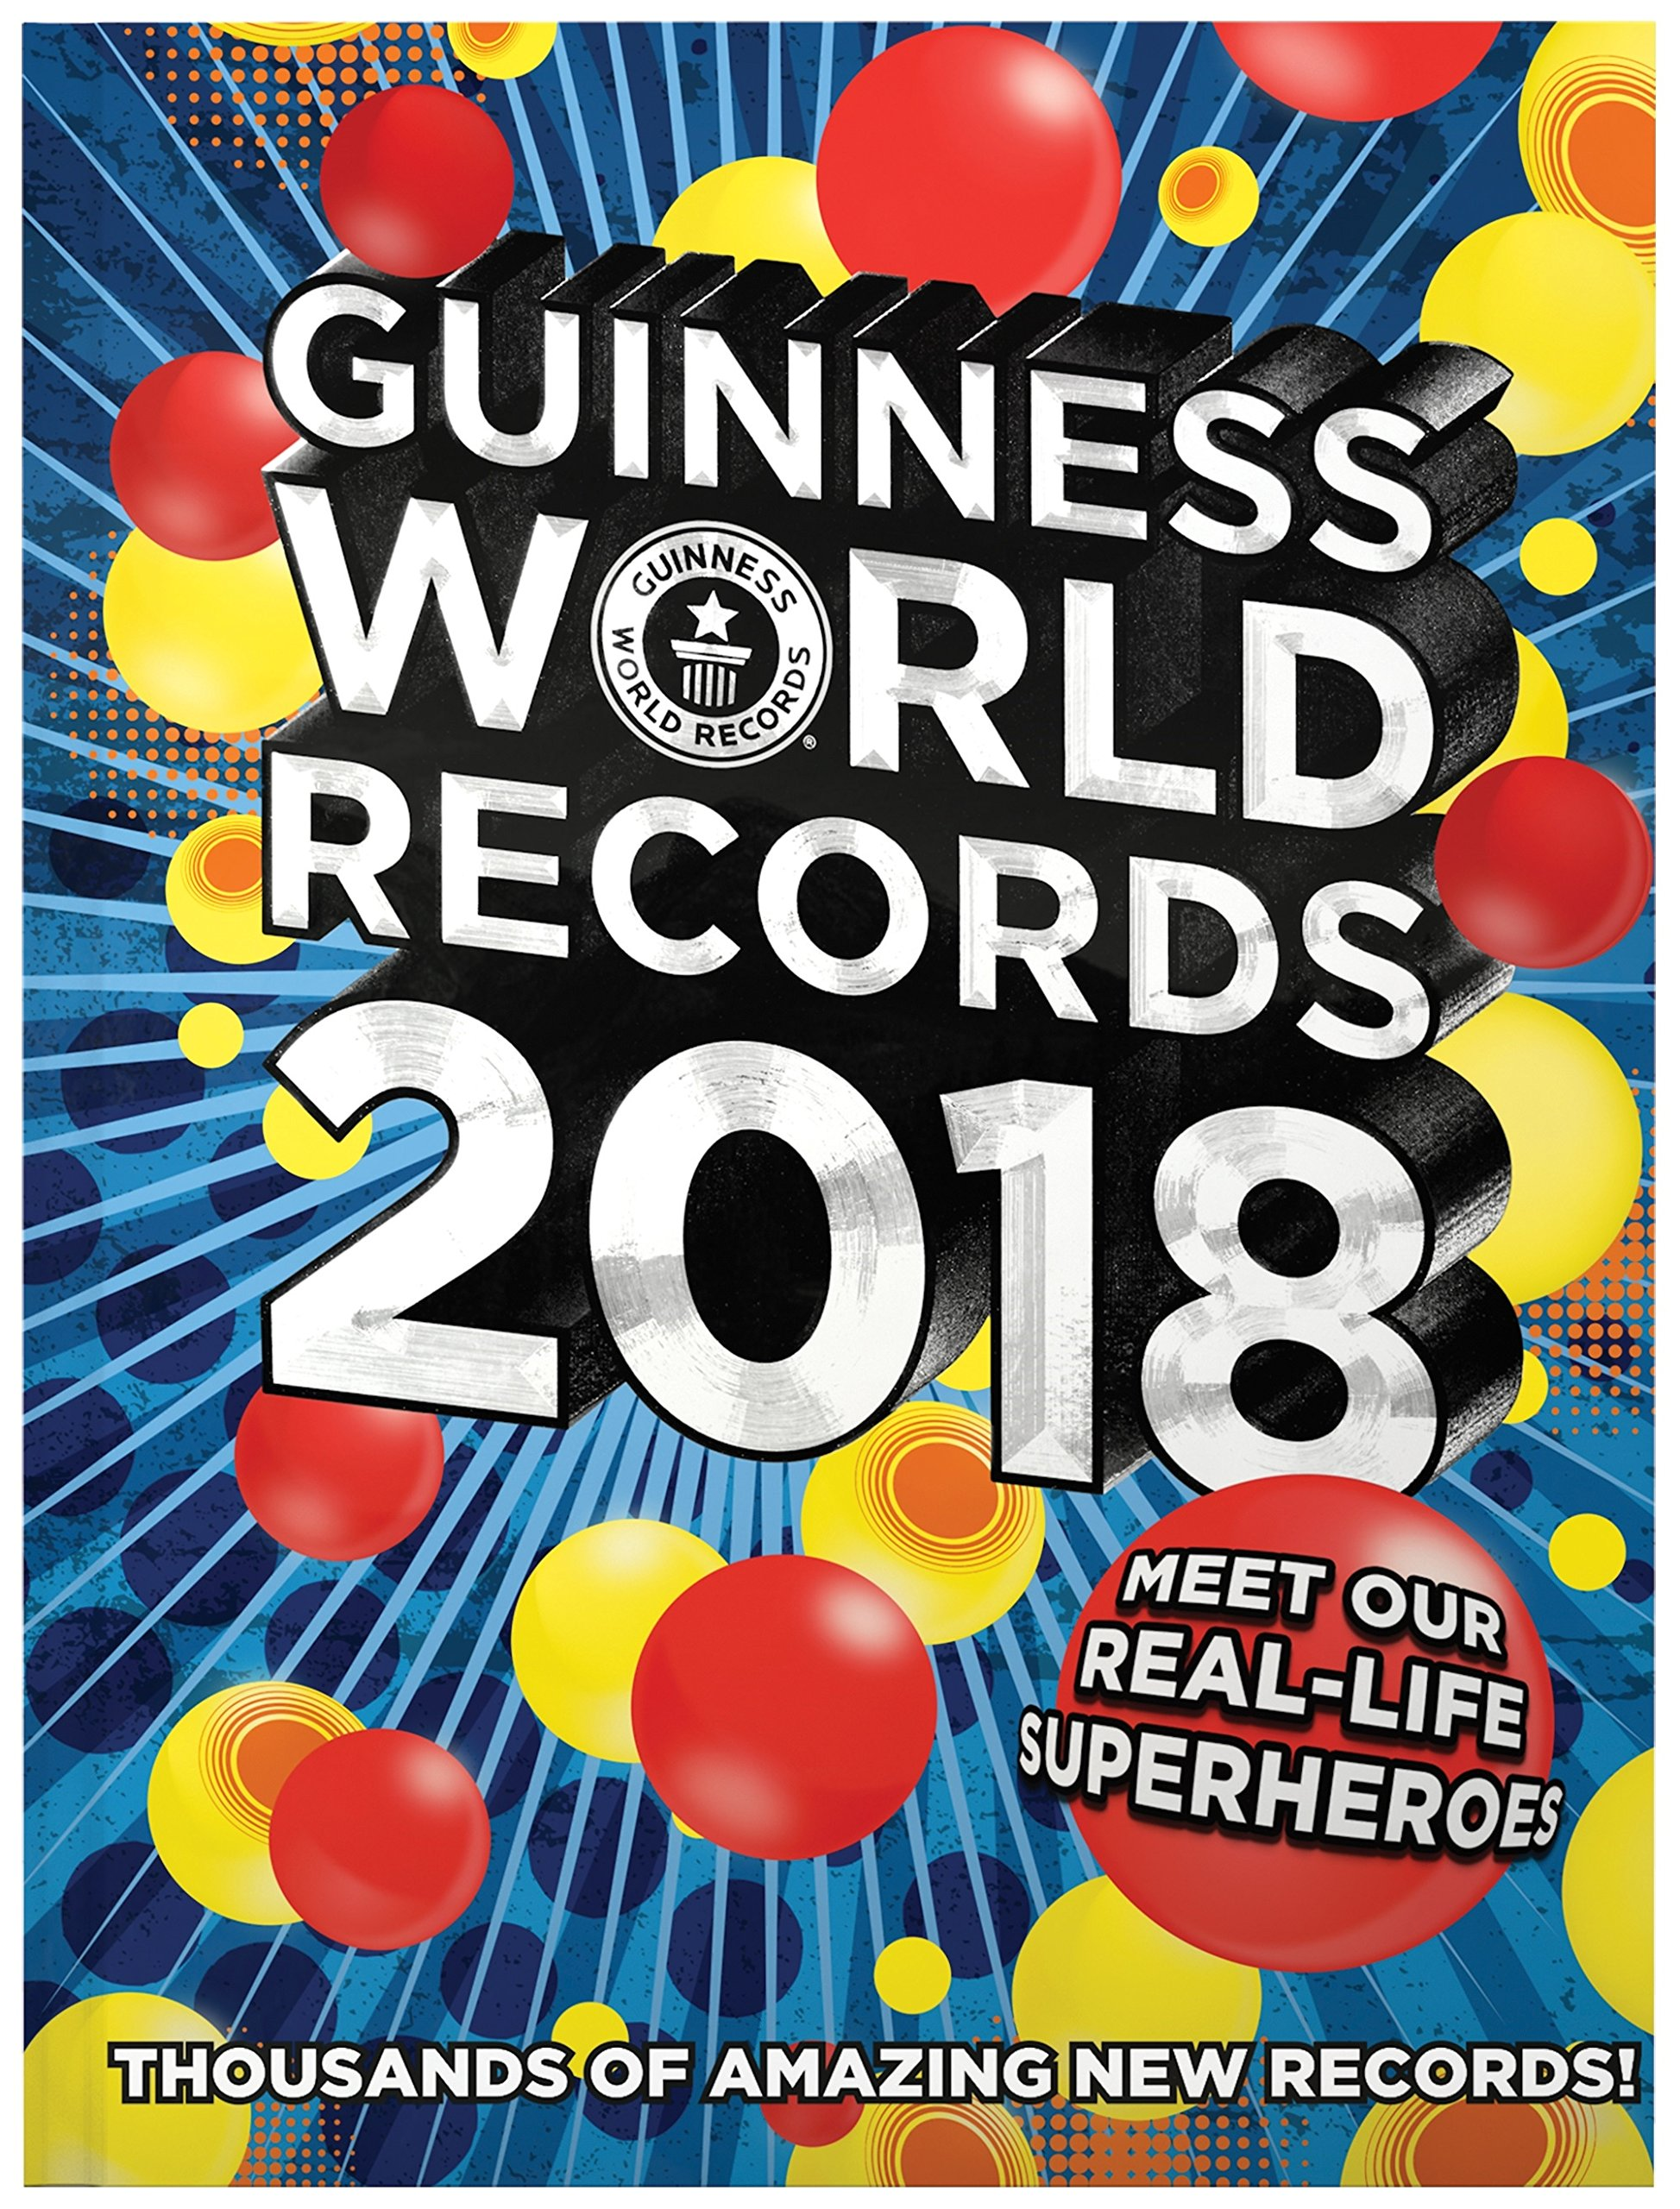 book world free records of guinness